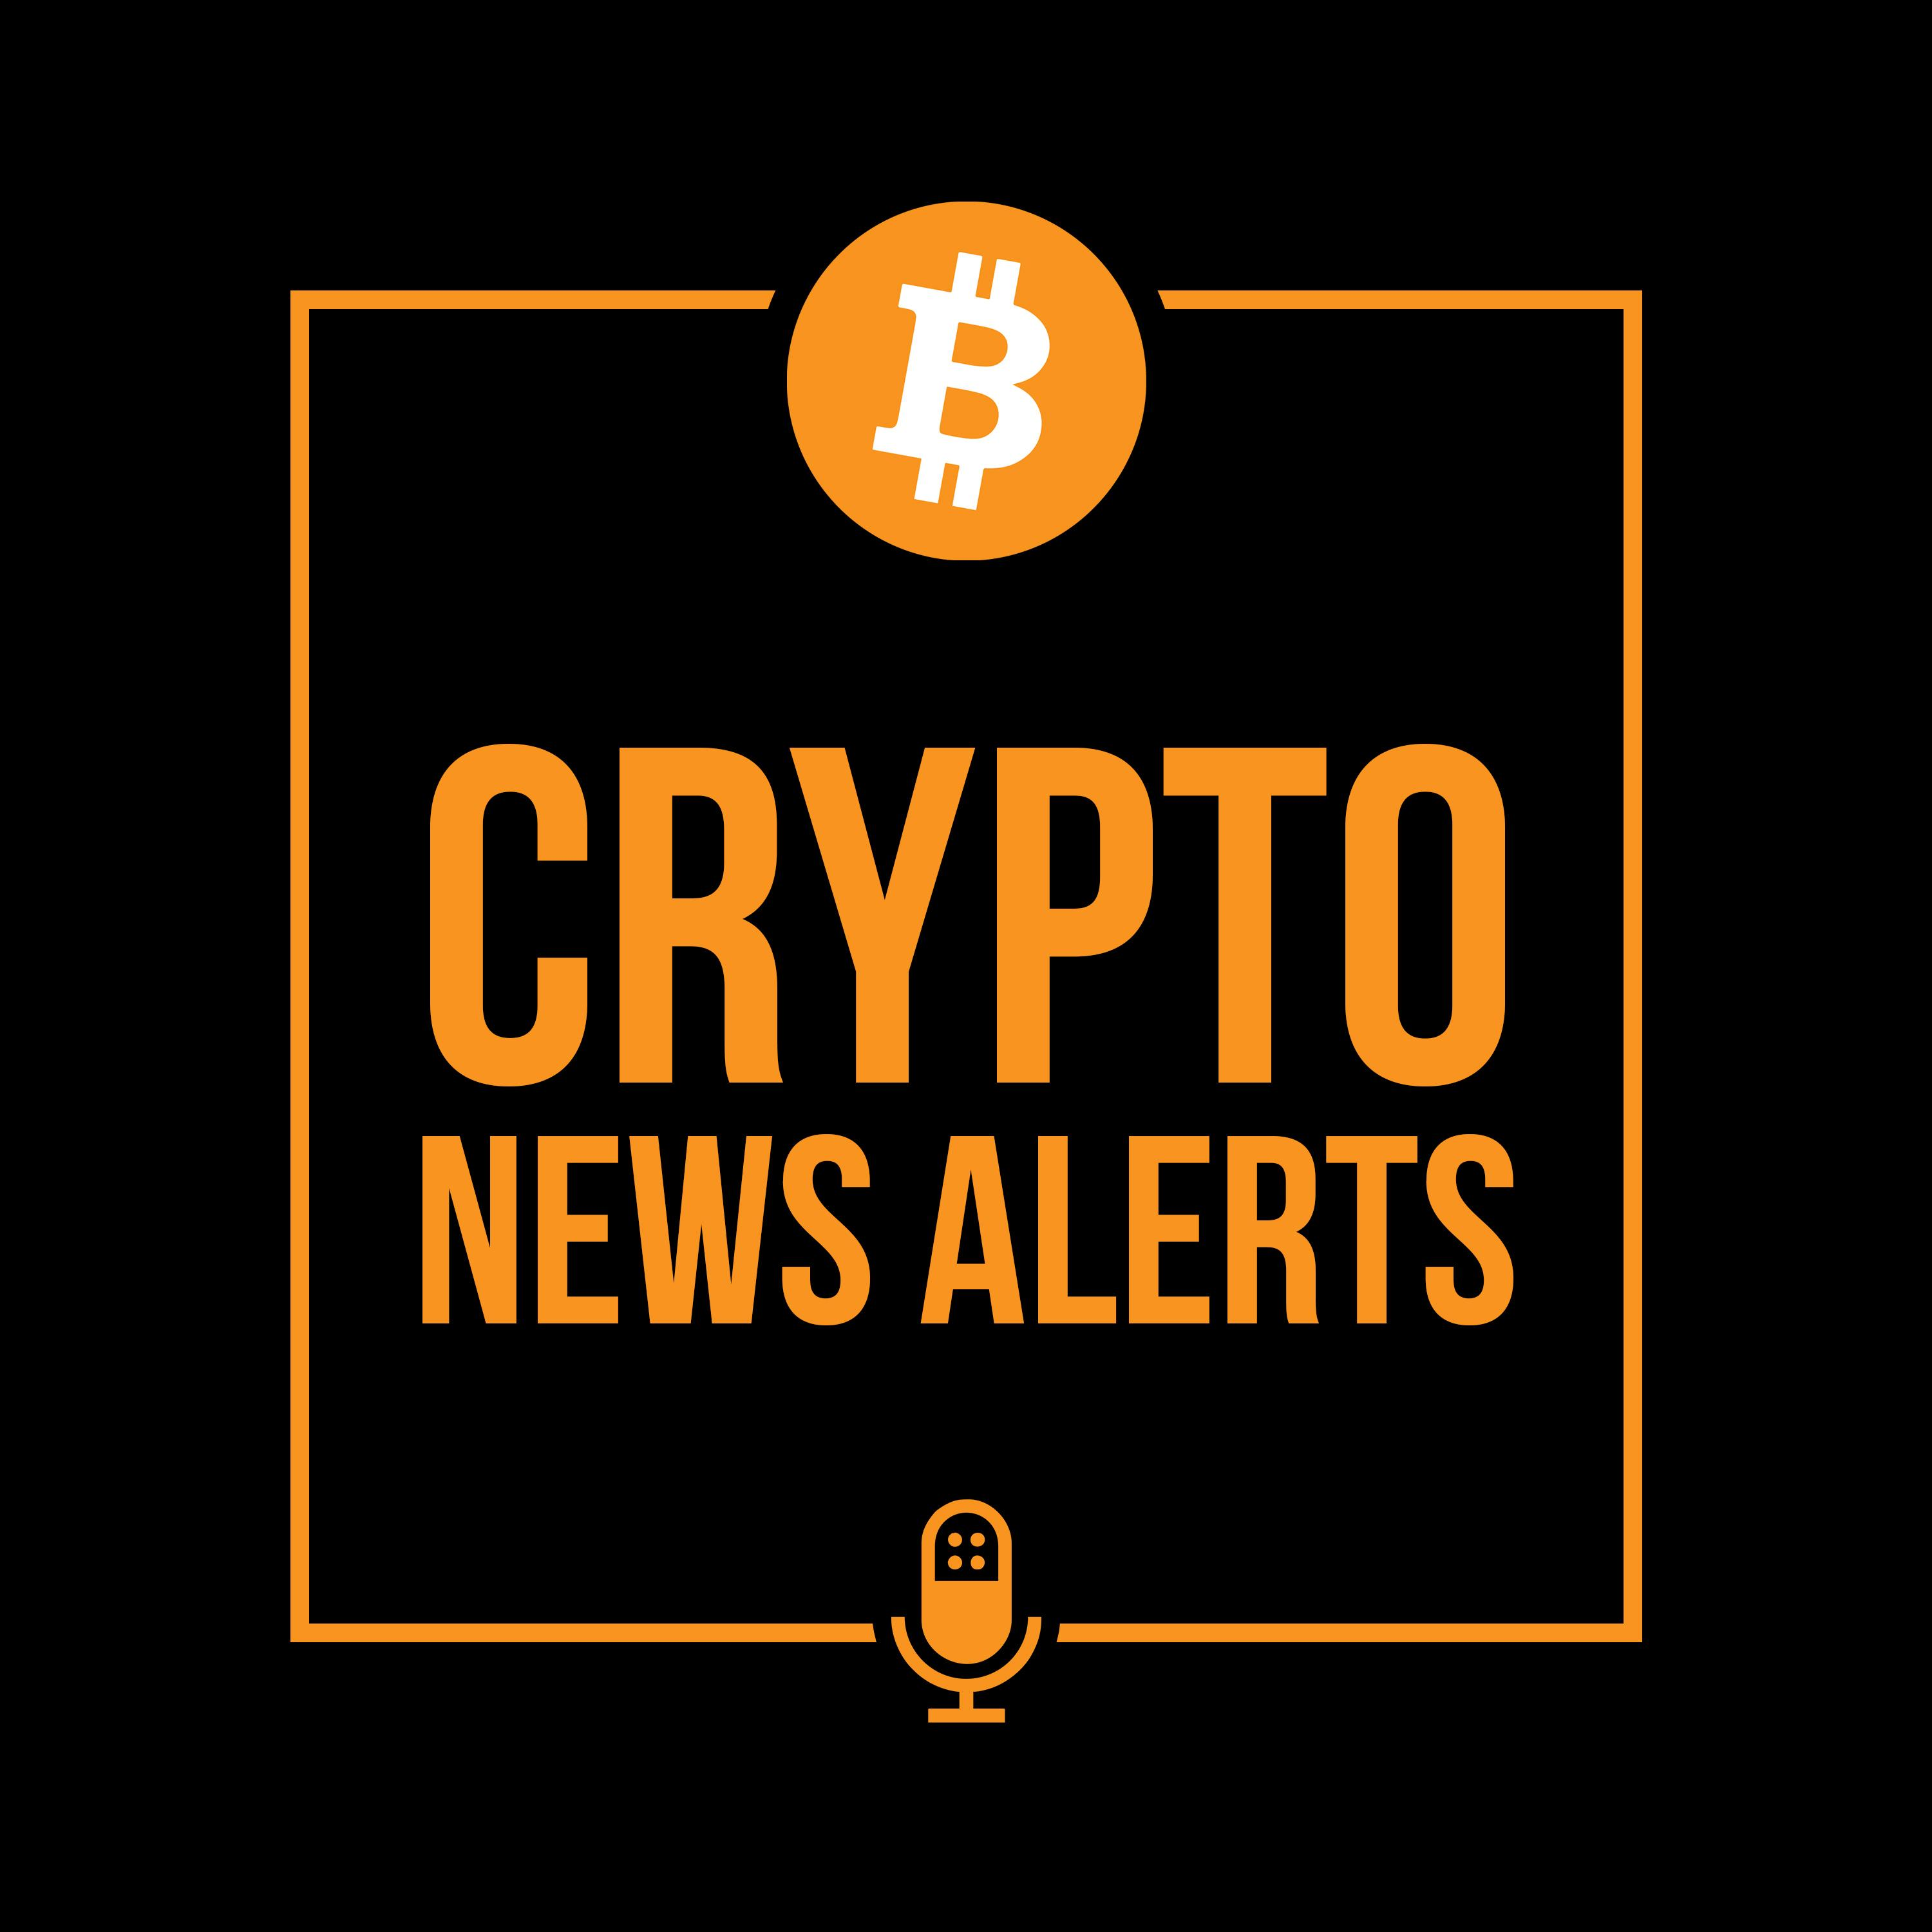 604: EVERYBODY WILL ACCEPT BITCOIN AND ITS PRICE WILL REACH $250K IN 2022, SAYS BILLIONAIRE TIM DRAPER!!